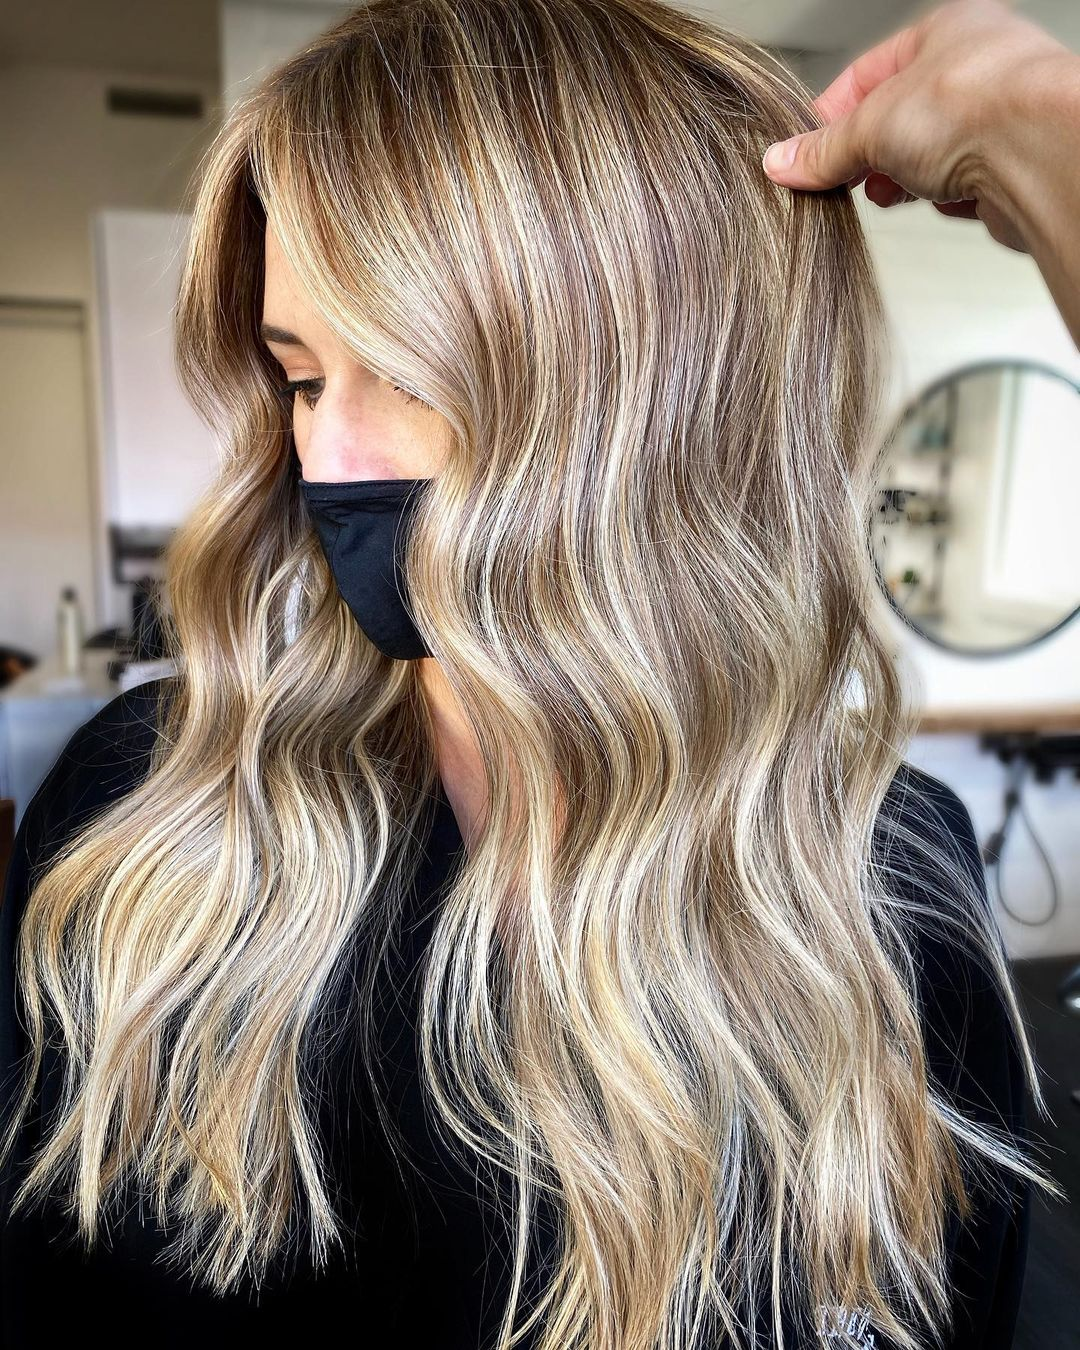 50 Newest Hairstyle For Women And Hair Trends For 2021 images 40